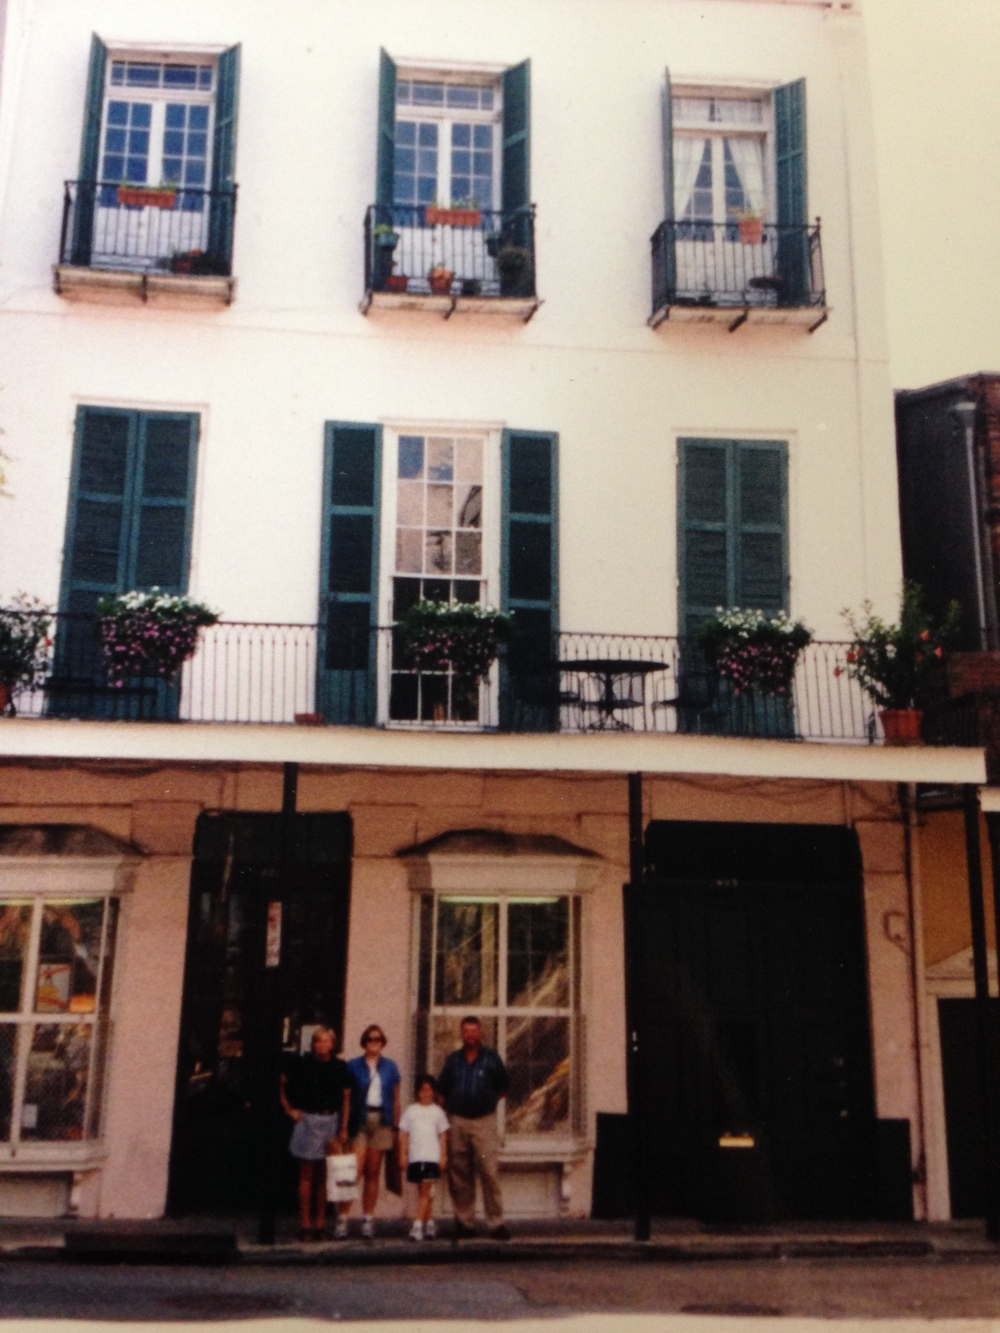 My family and I (I'm the short one) look so thrilled… Was this supposed to be a family pic or just an excuse to take a picture of this New Orleans building? Who knows ?